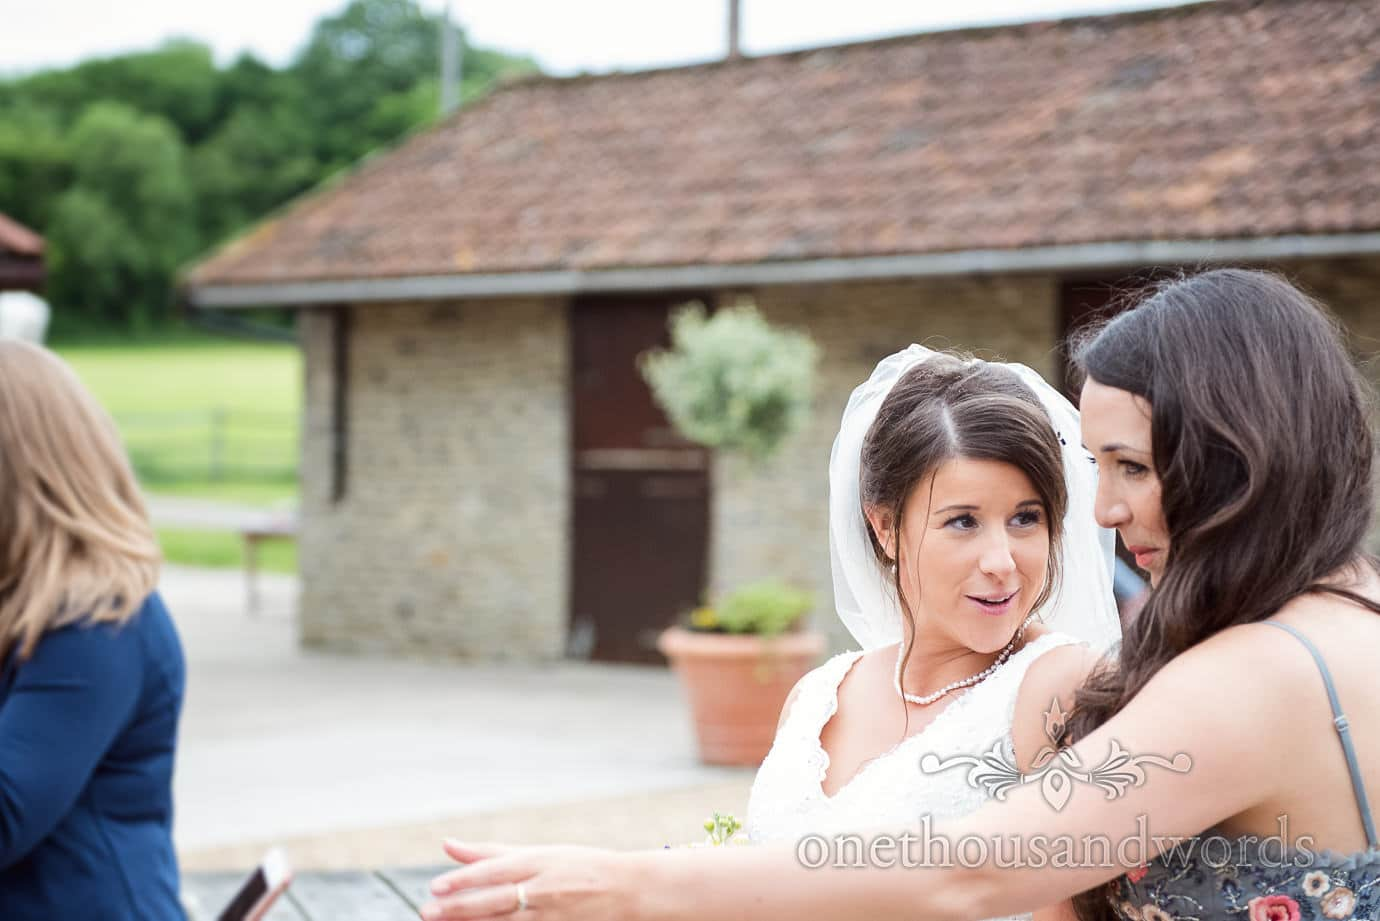 Beautiful bride with pearls and veil talks to wedding guests at rustic wedding venue in Dorset